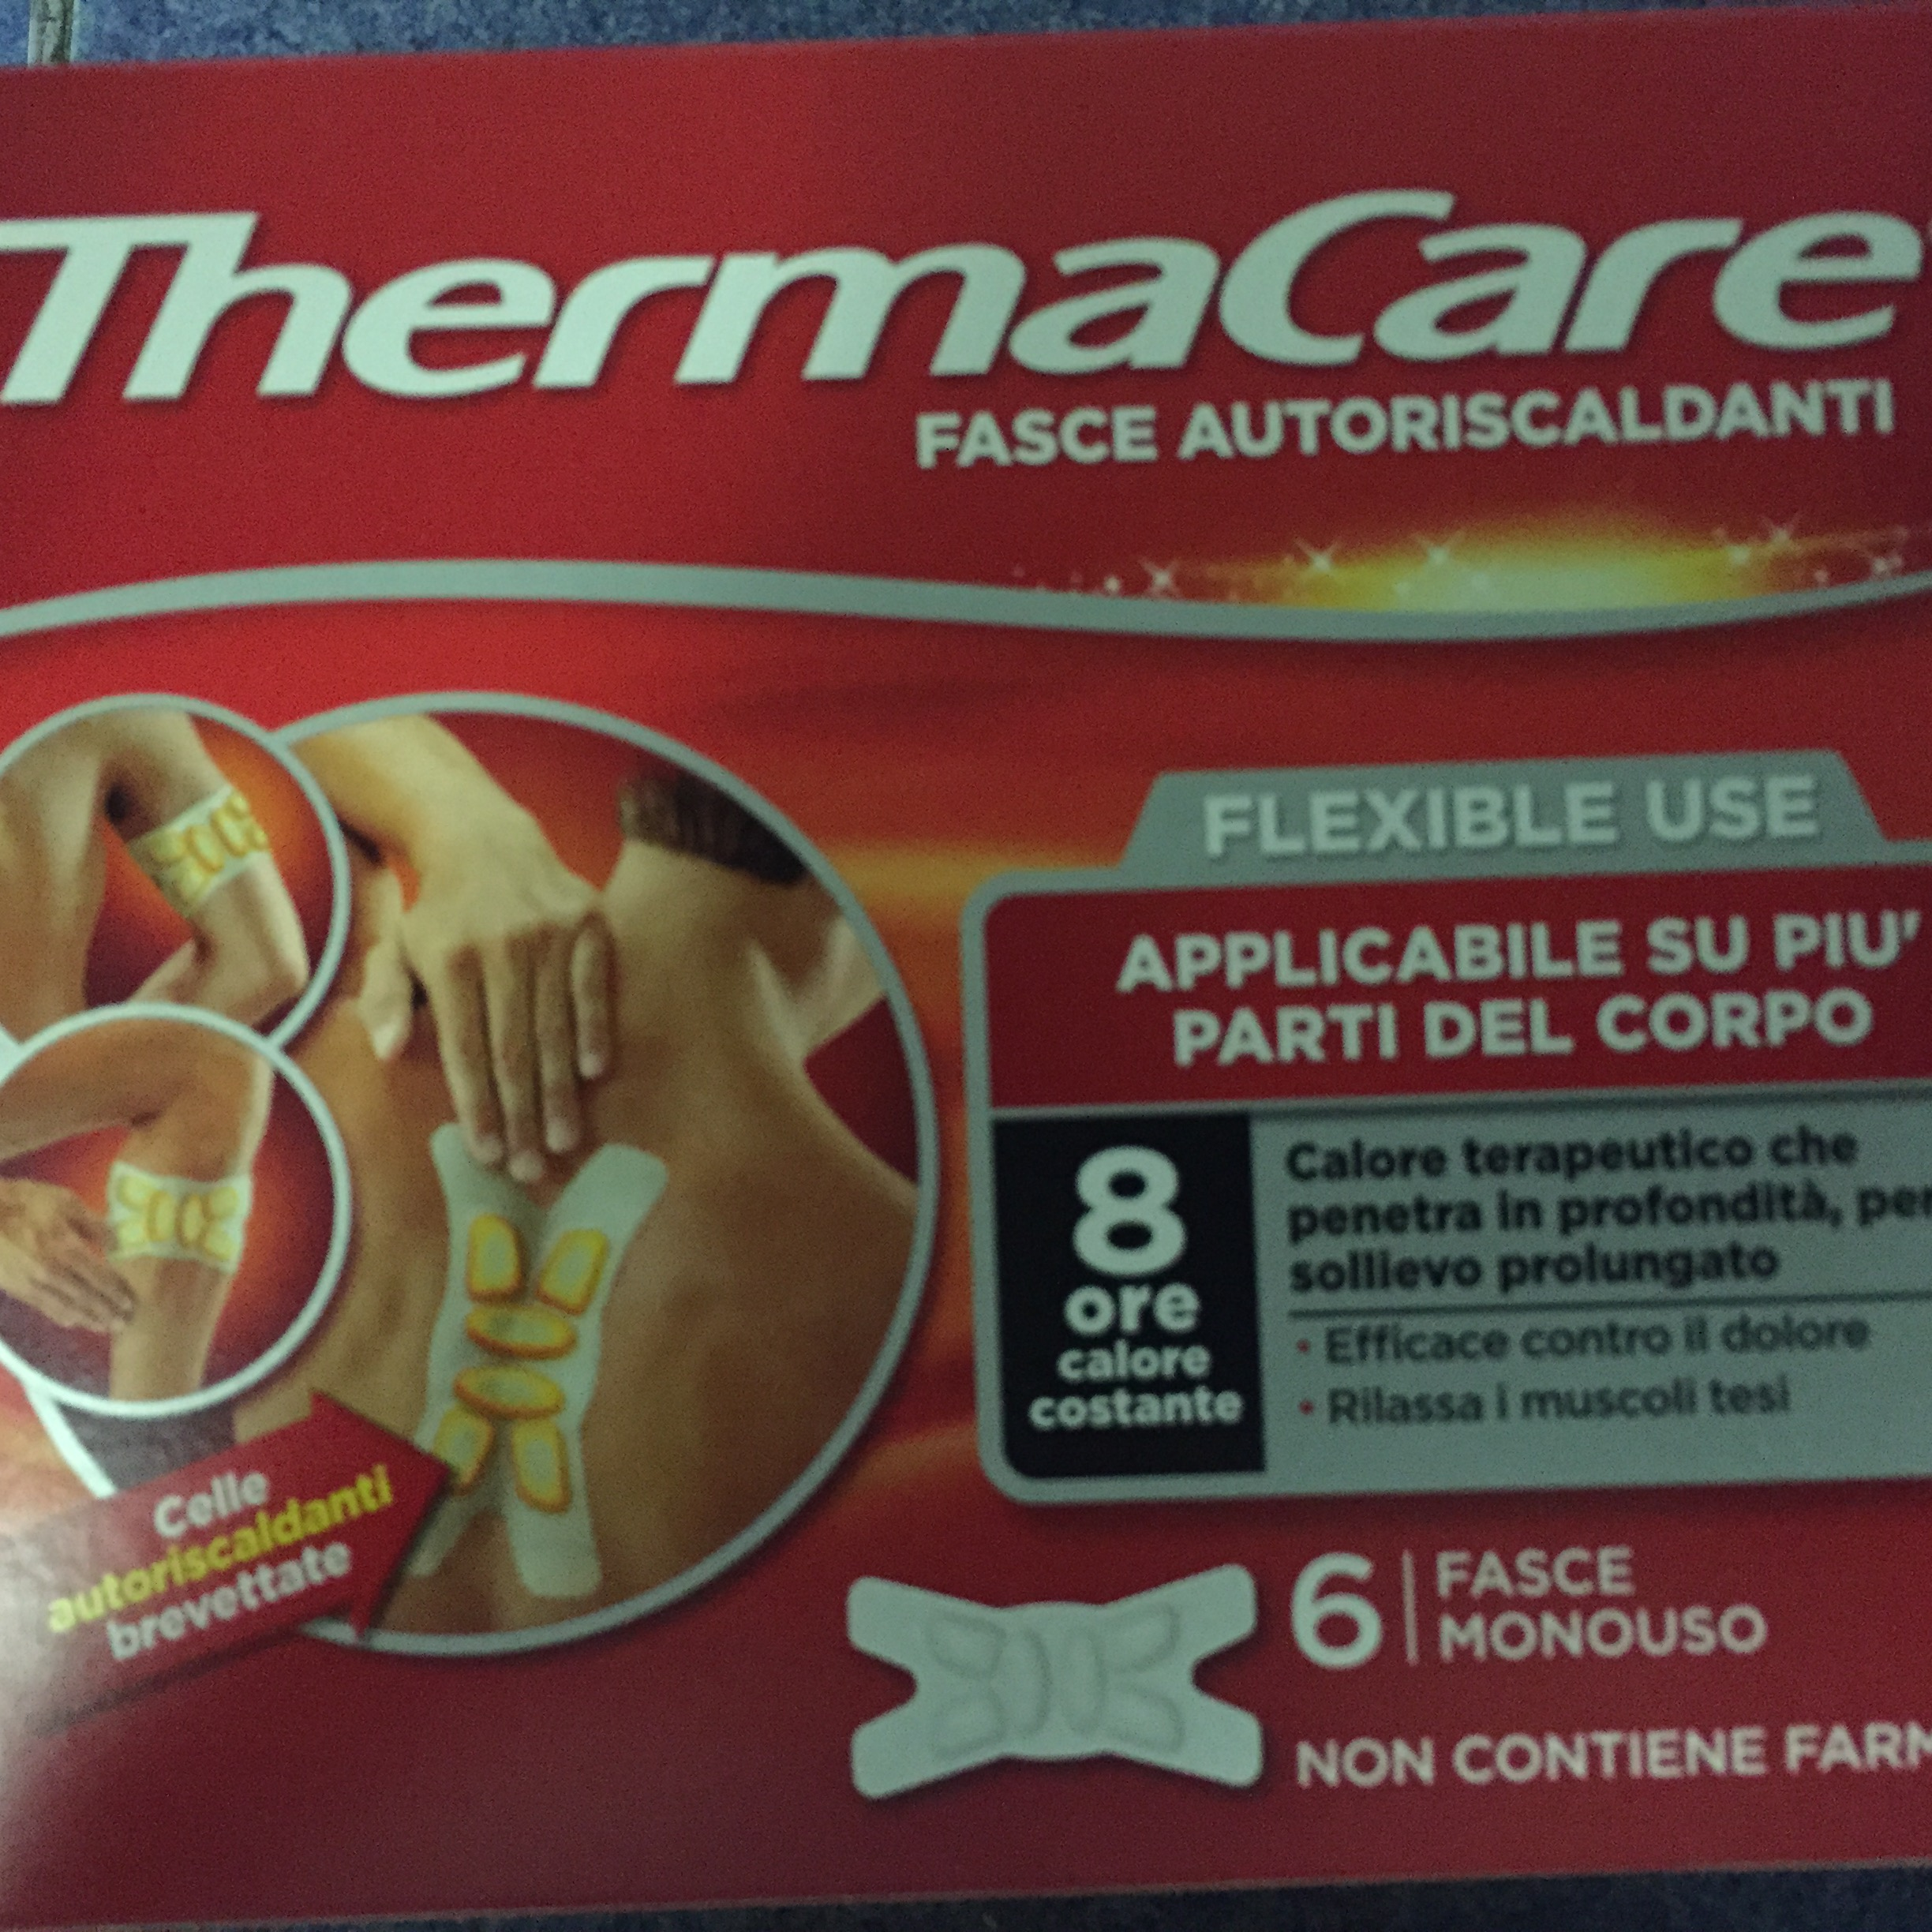 thermalcare-flexible-6-fasce-autoriscaldanti